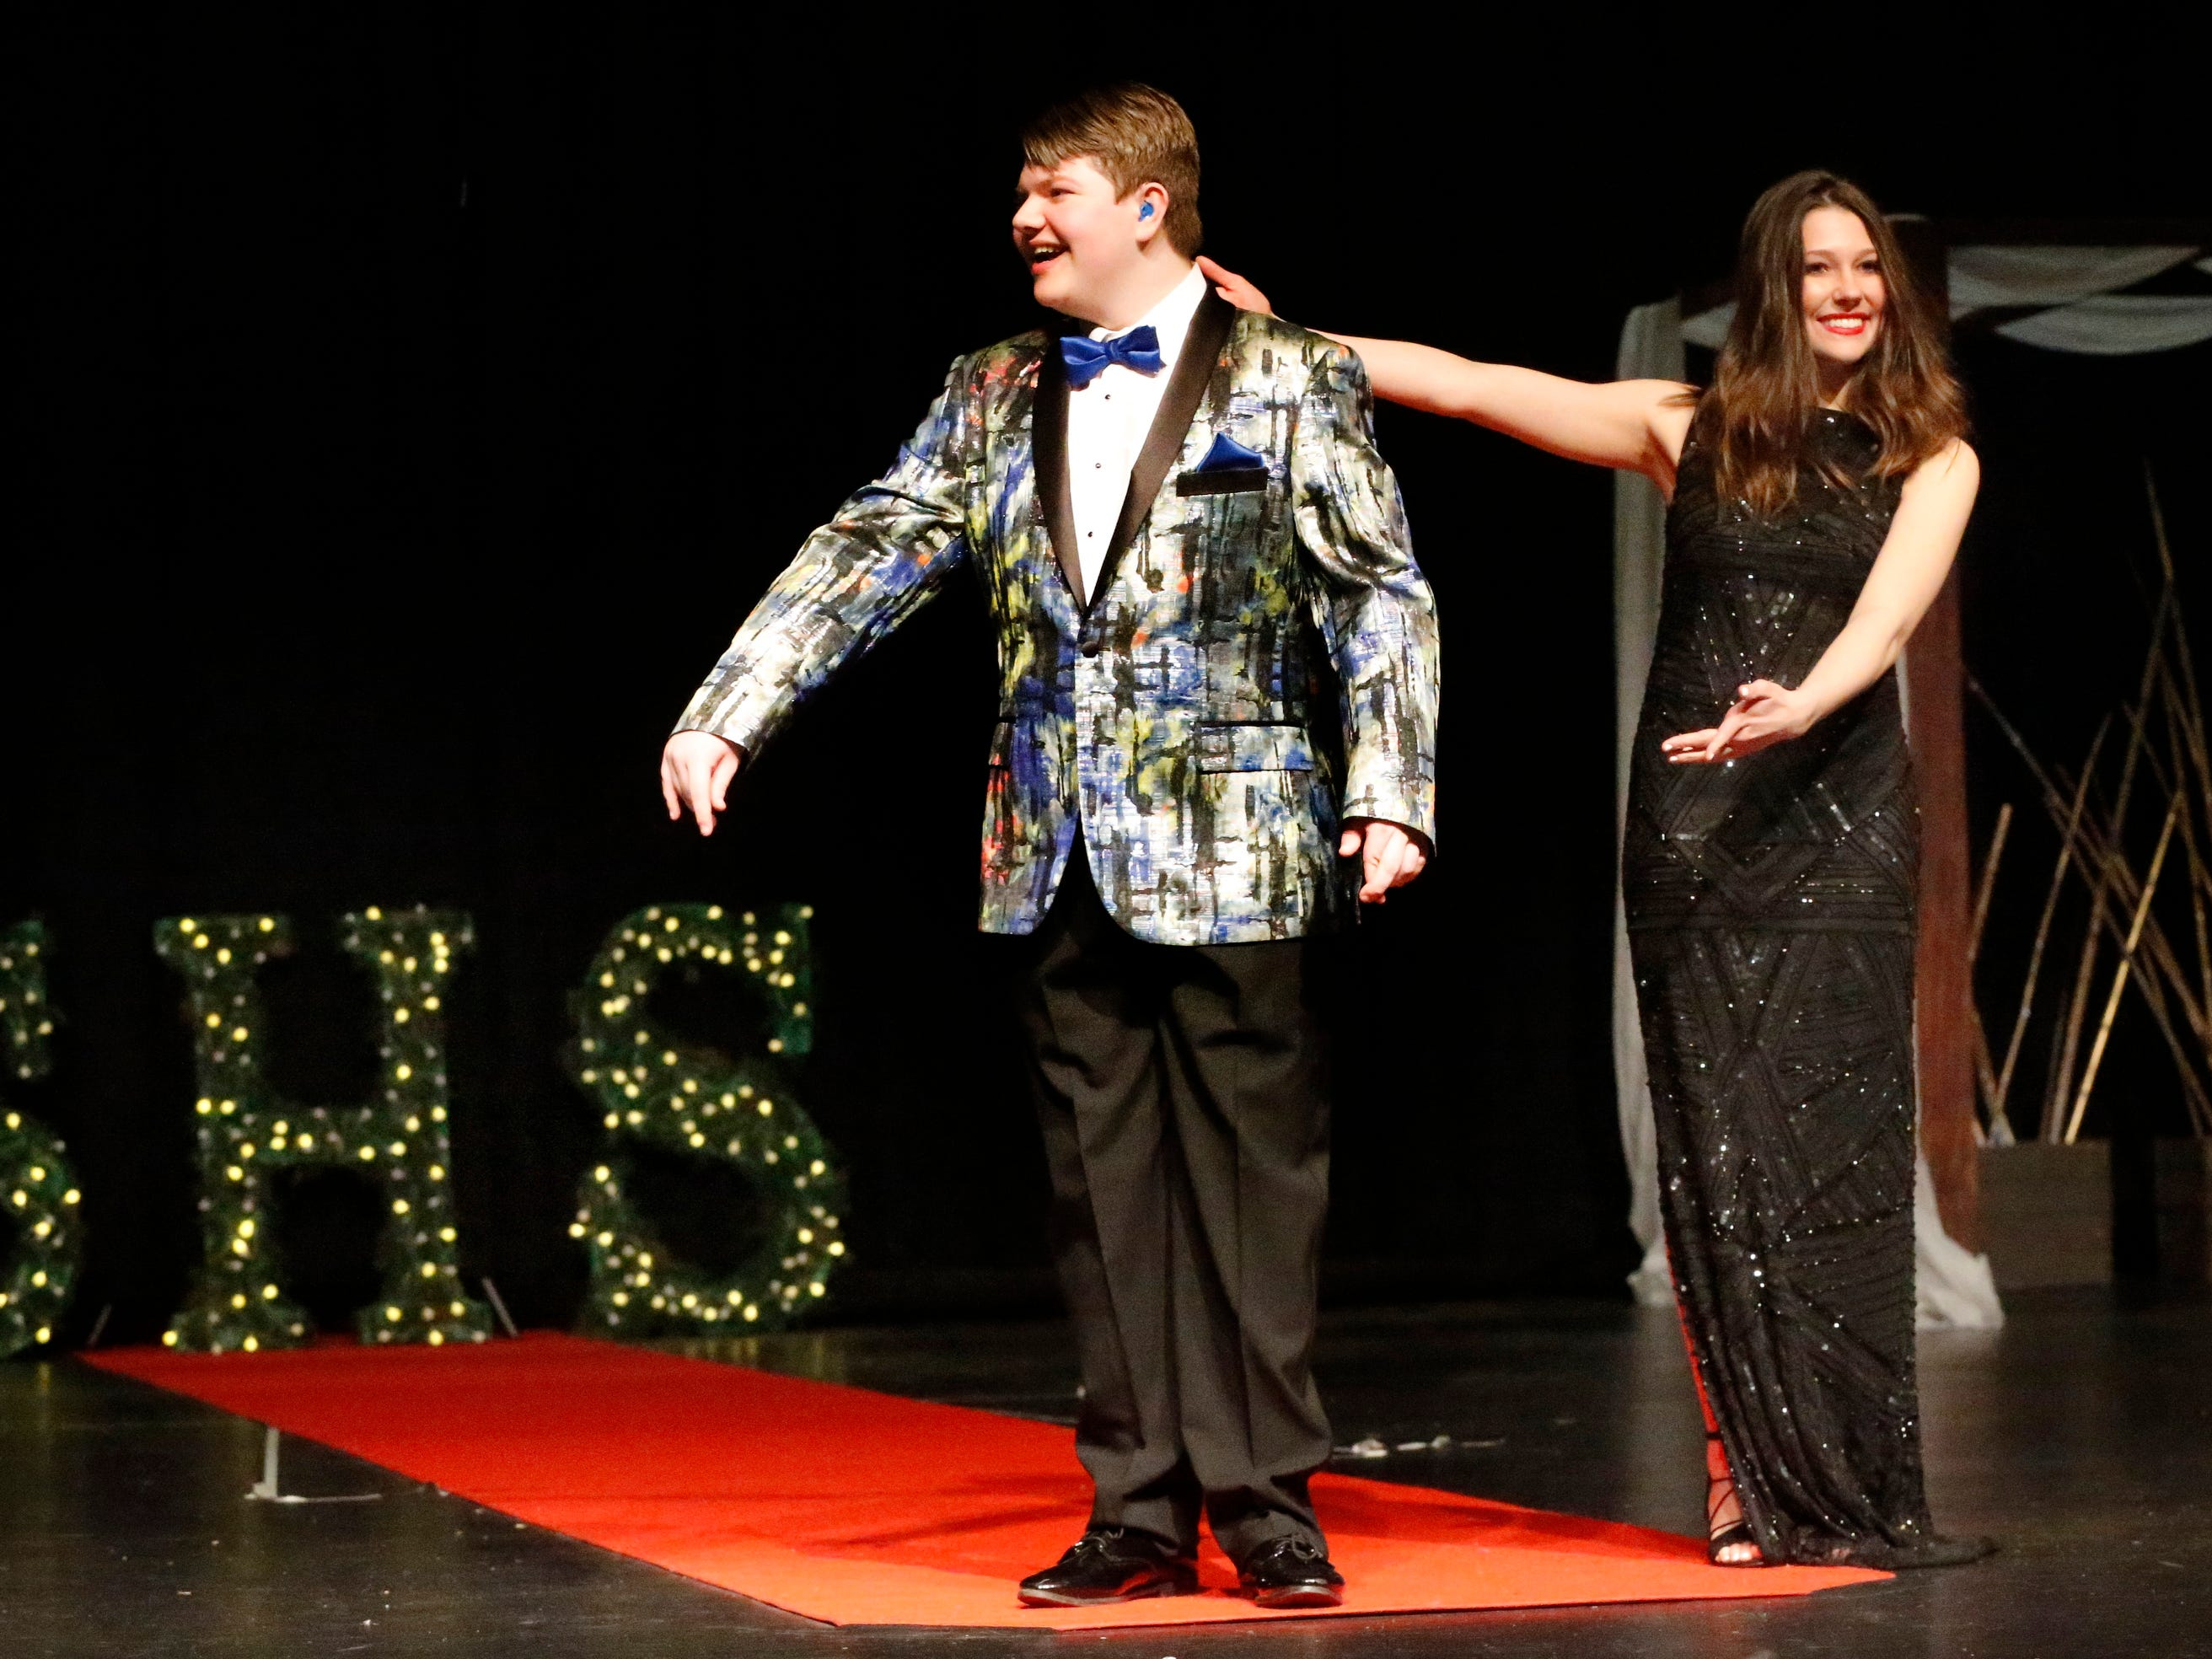 Tyler Persinger, left, and Jordan Black show off the latest in prom fashions during the Siegel Prom Fashion Show on Feb. 14, 2019.